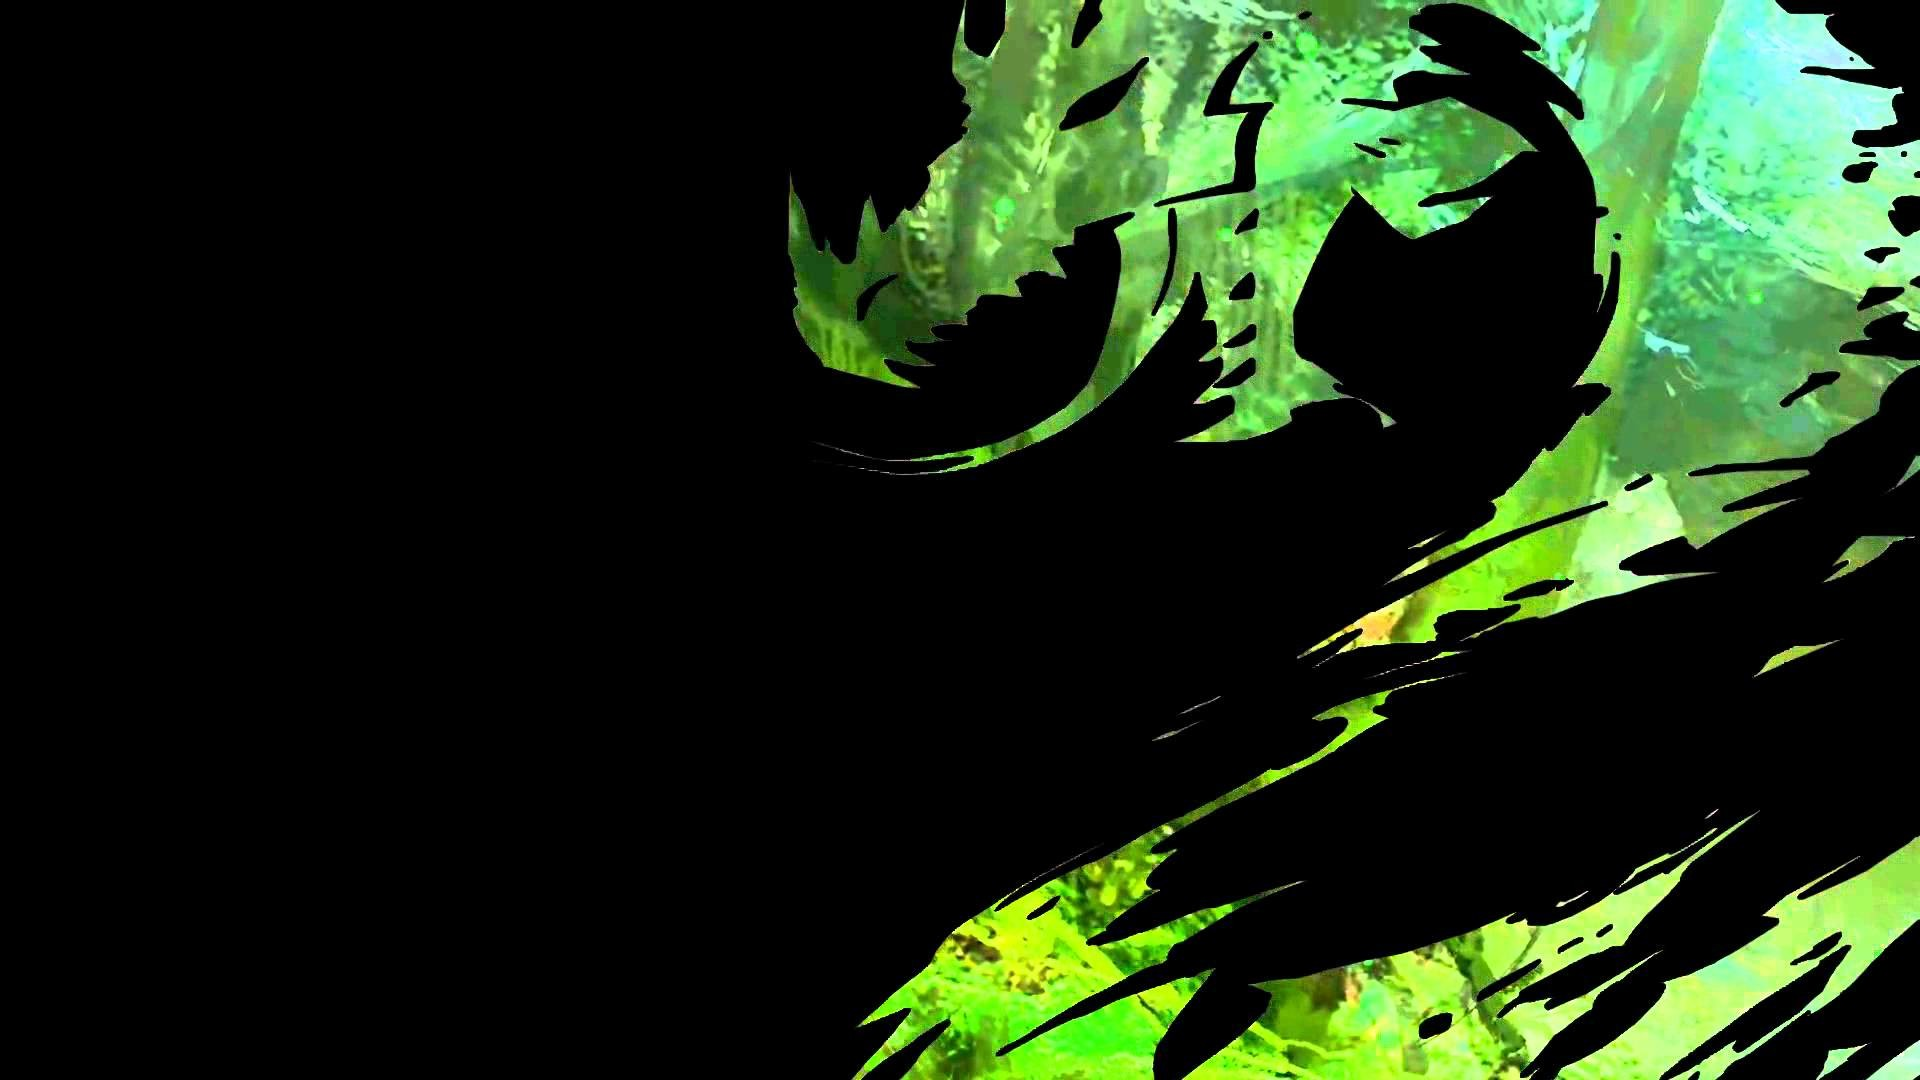 1920x1080 Guild Wars 2 Dreamscene Black background + Original animation P -  YouTube